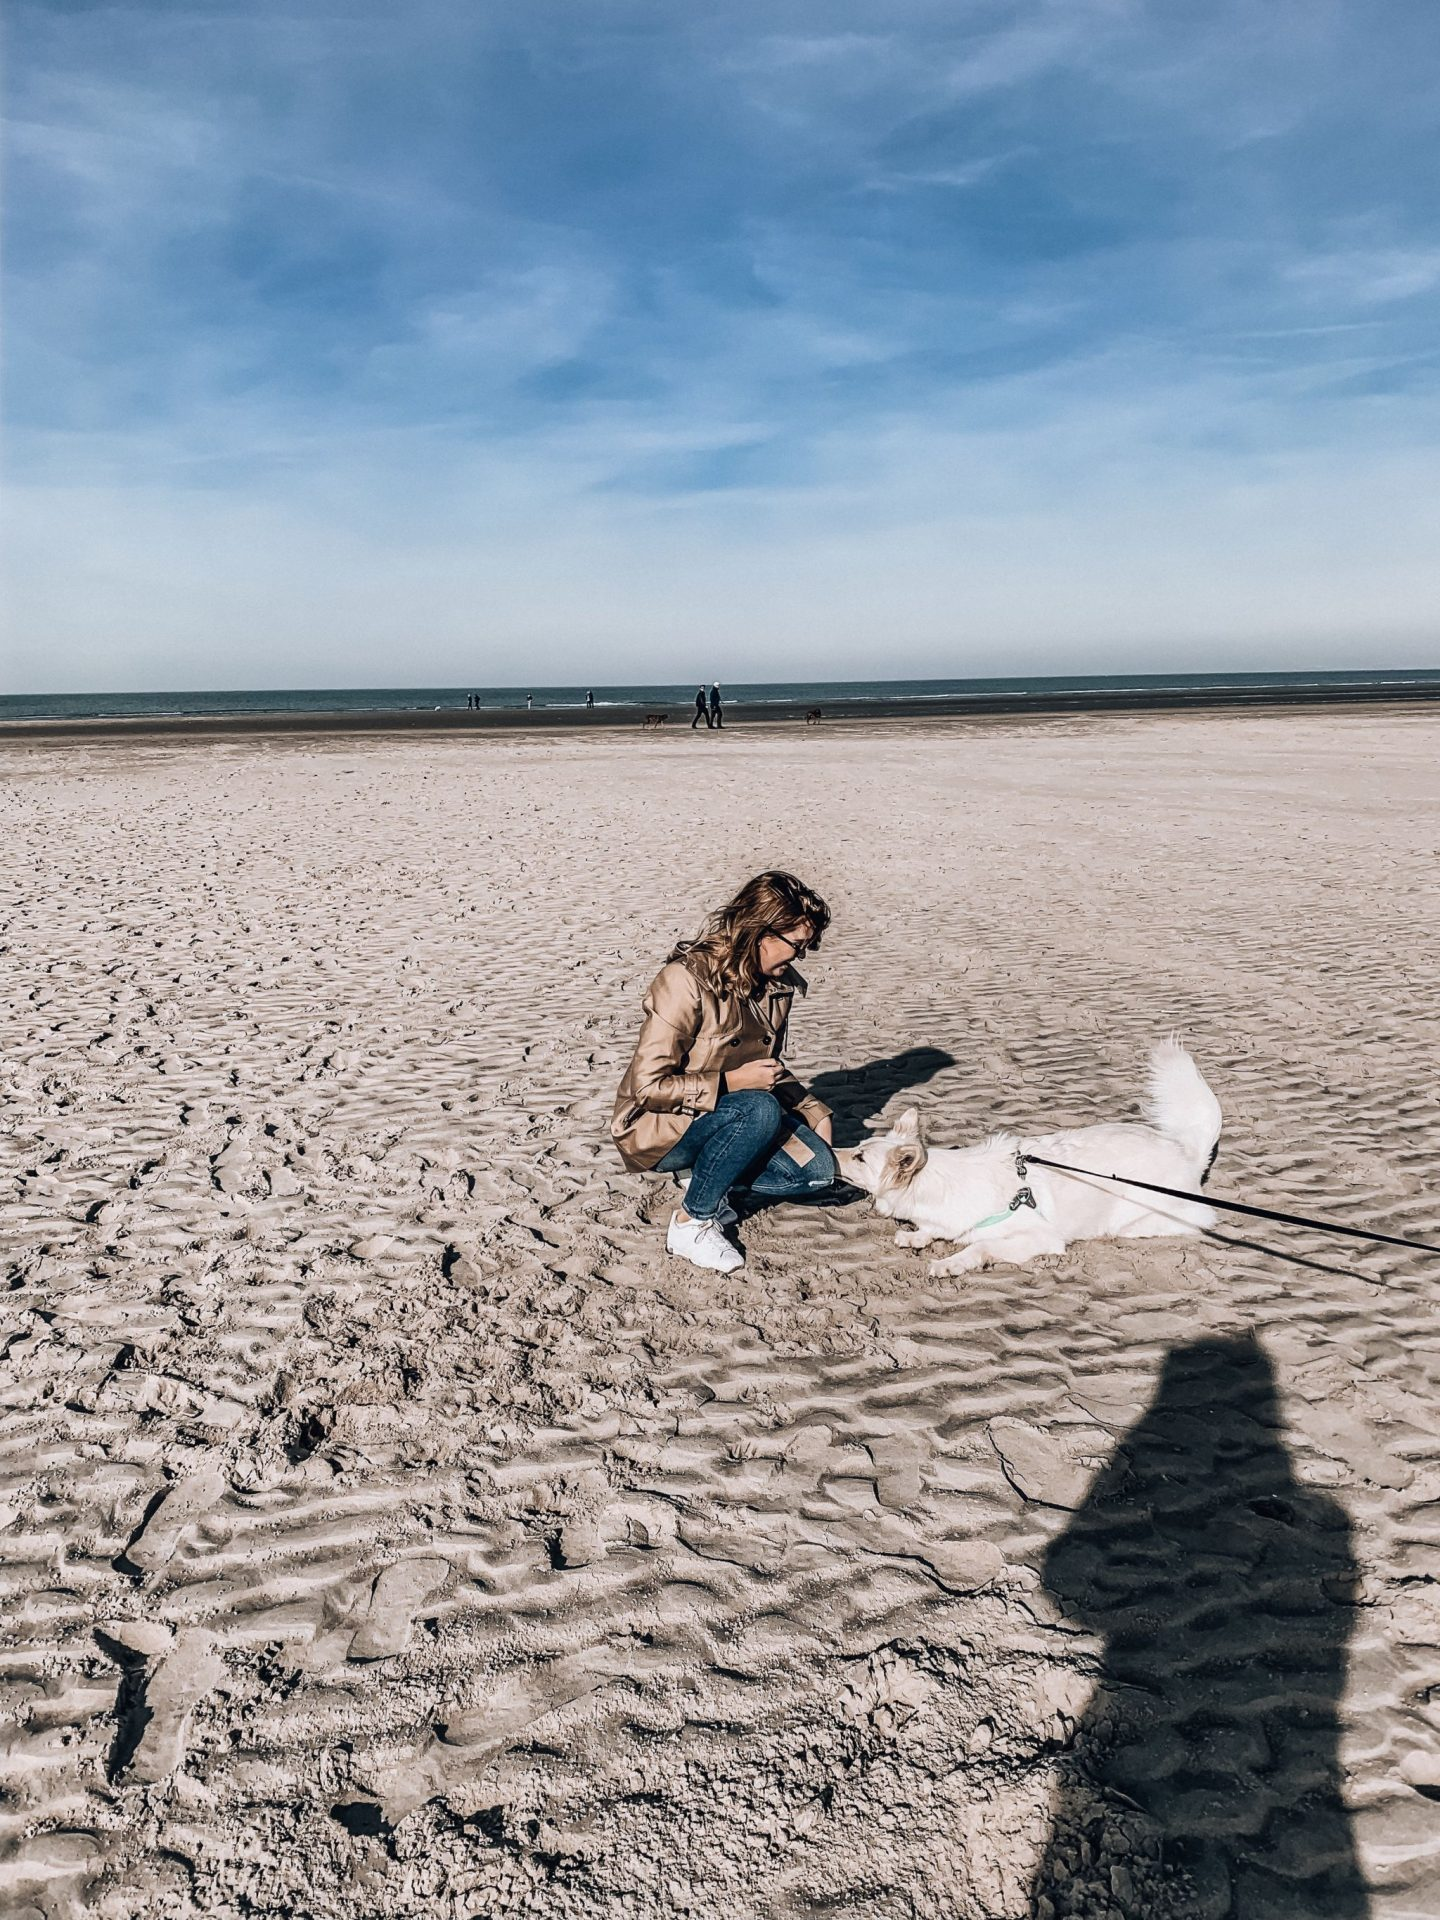 Silhouette, white dog, girl, ocean, beach